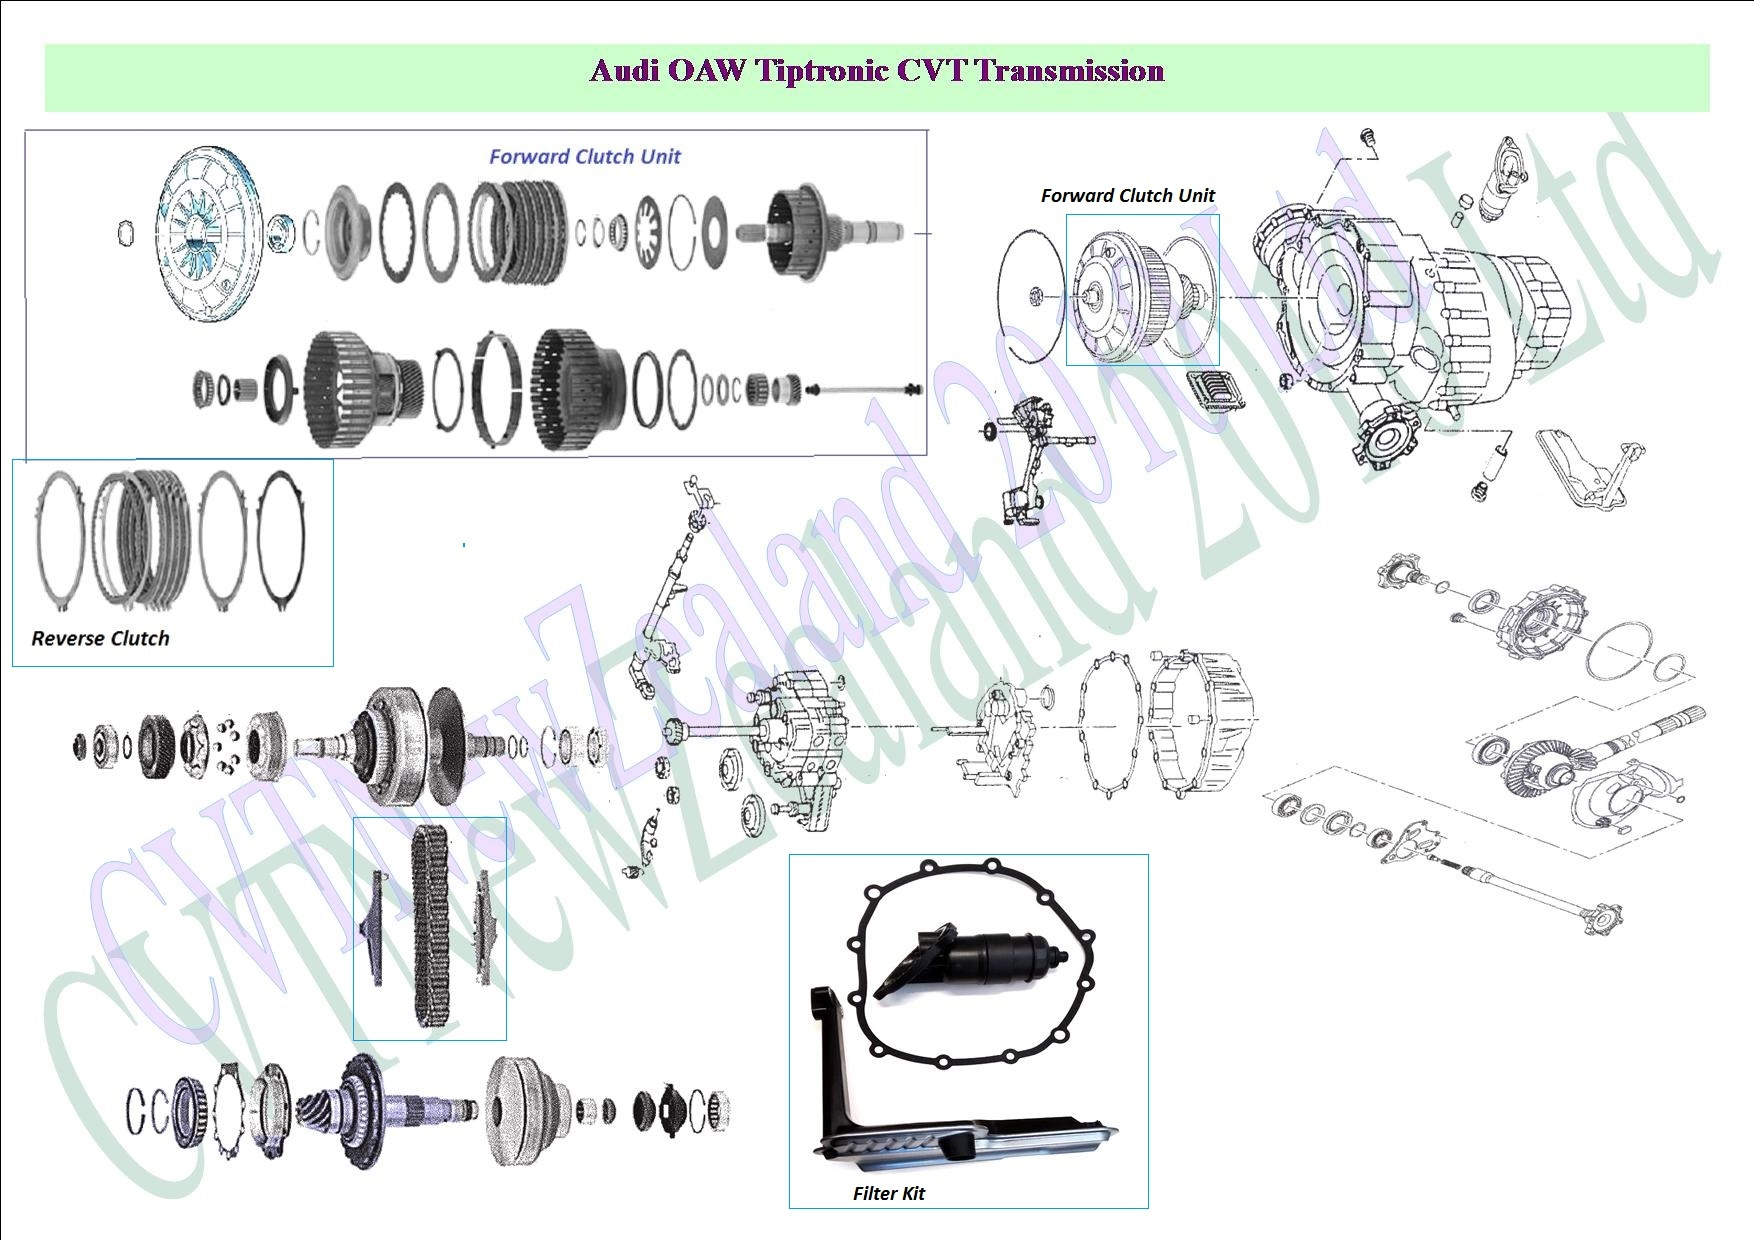 hight resolution of you cannot use any type of cvt fluid in a automatic transmission that requires atf transmission fluid cvt transmission operates with a chain or belt and is